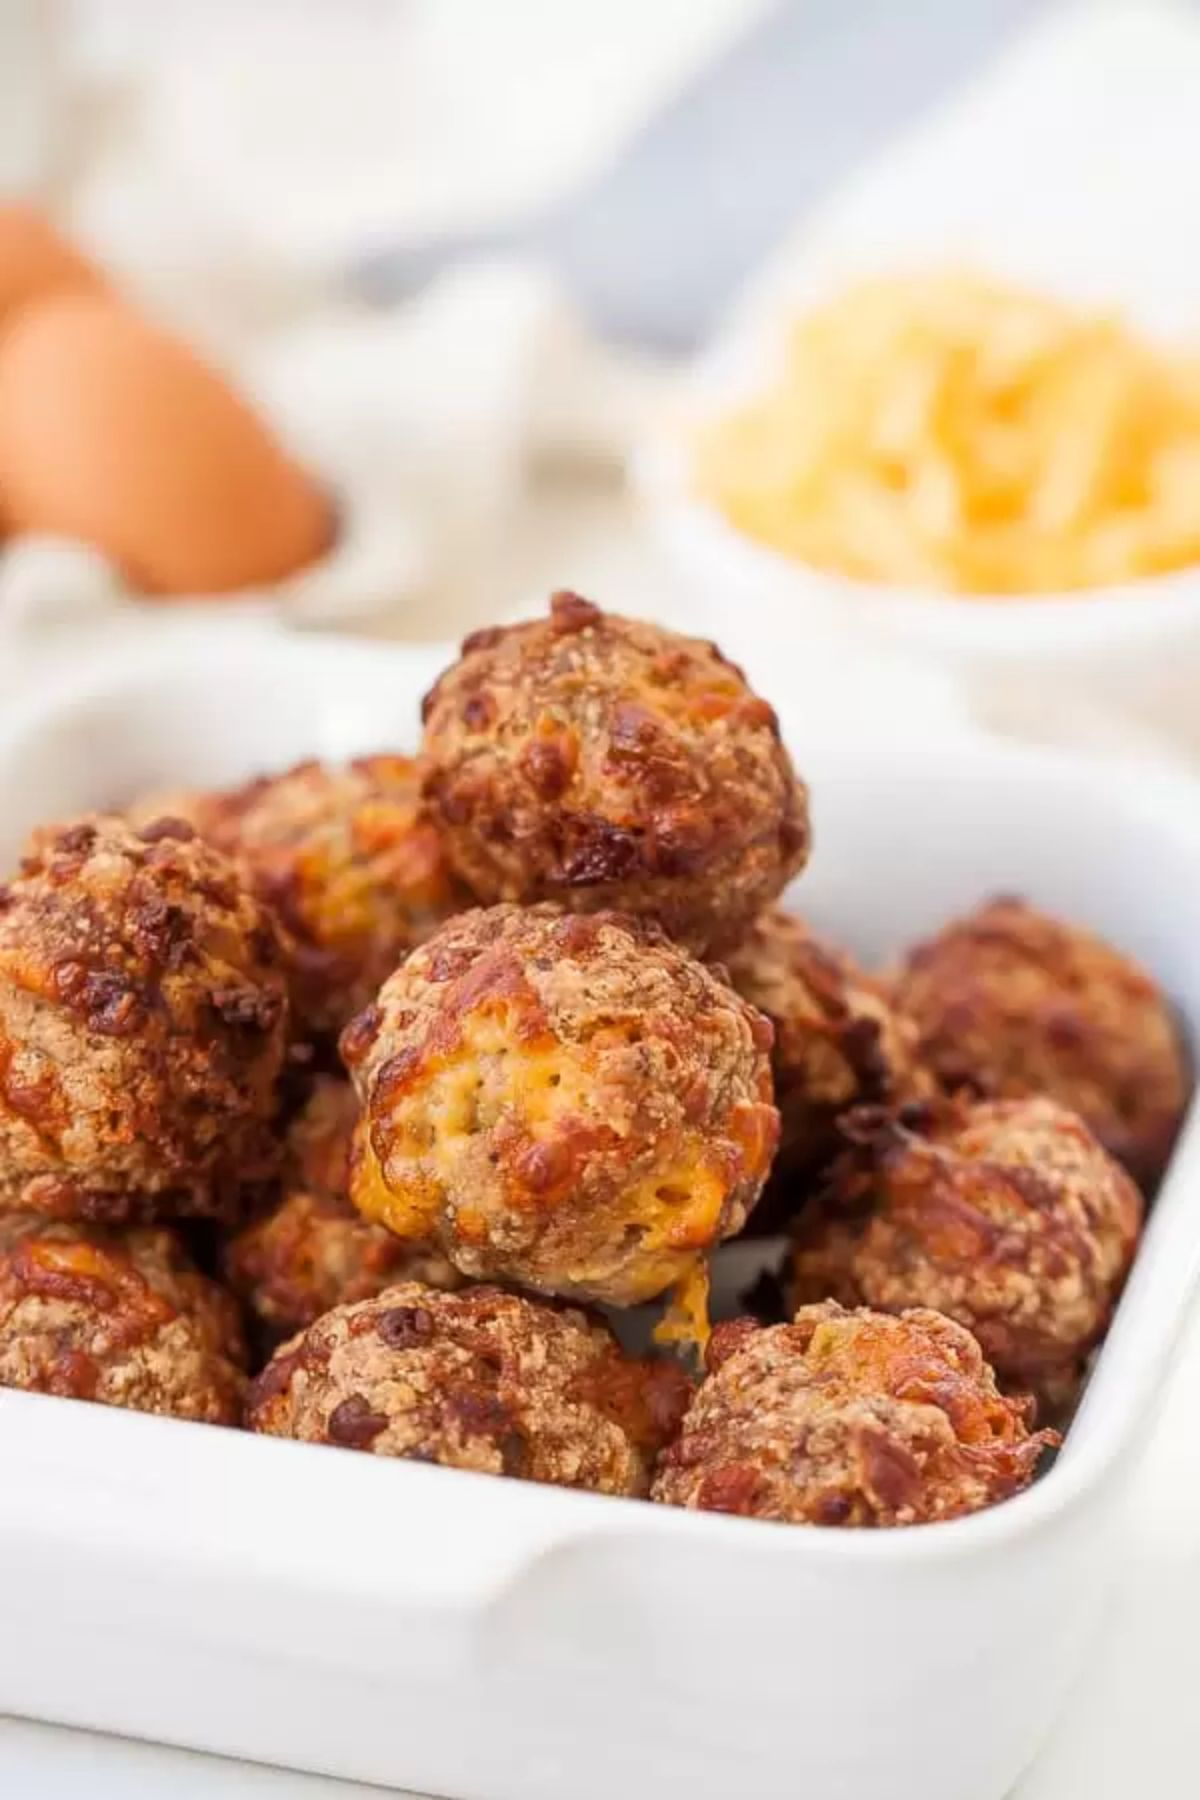 A rectangular oval baking dish is filled with baked sausage balls. In the bacground are blurred pots of toppings and some eggs